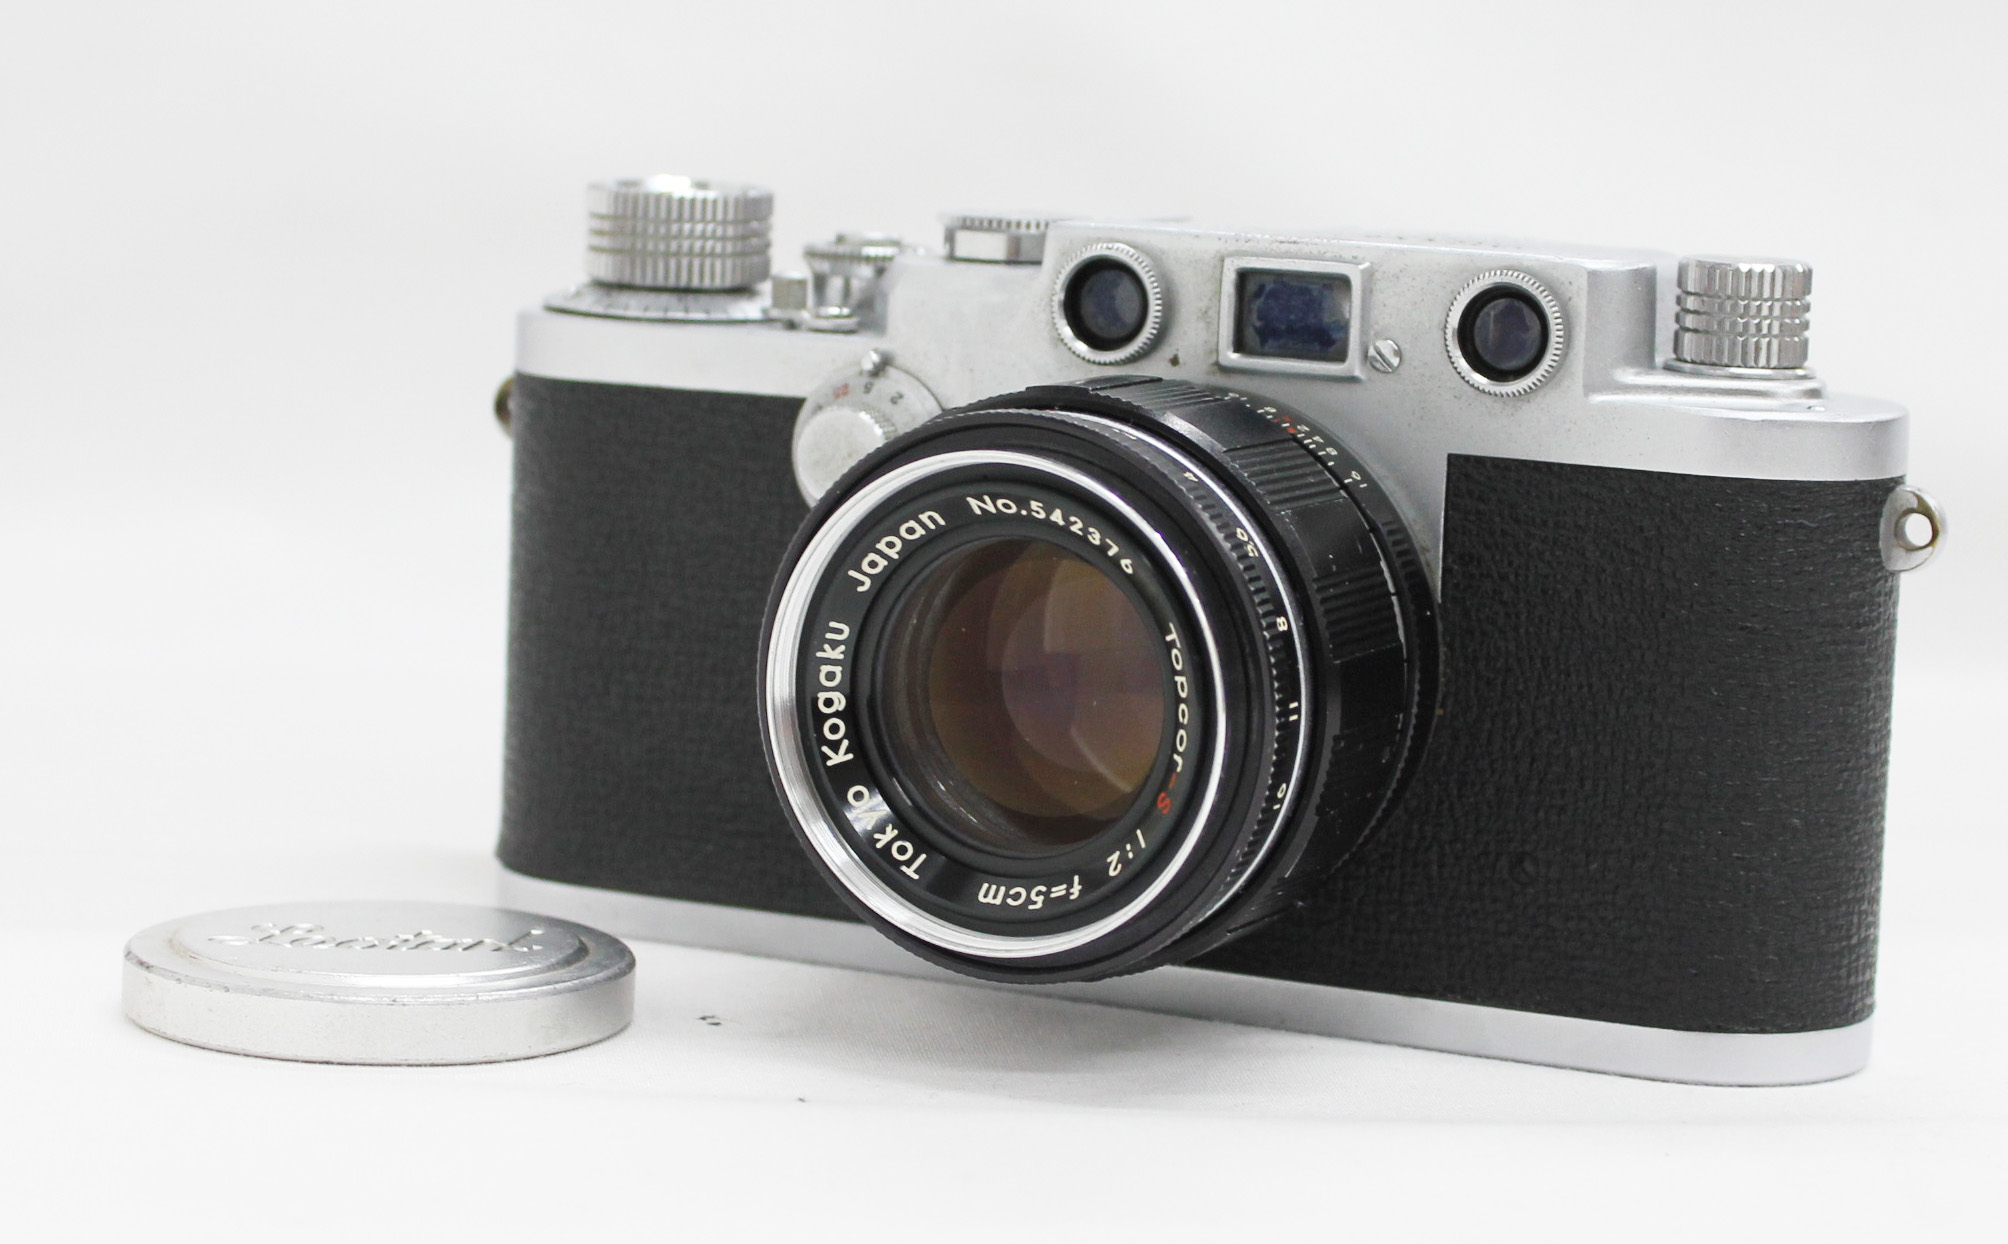 Japan Used Camera Shop | Nicca Type-3F III F Rangefinder Film Camera with Tokyo Kogaku Topcor-S 5cm 50mm F/2 L39 LTM Leica Screw Mount Lens from Japan